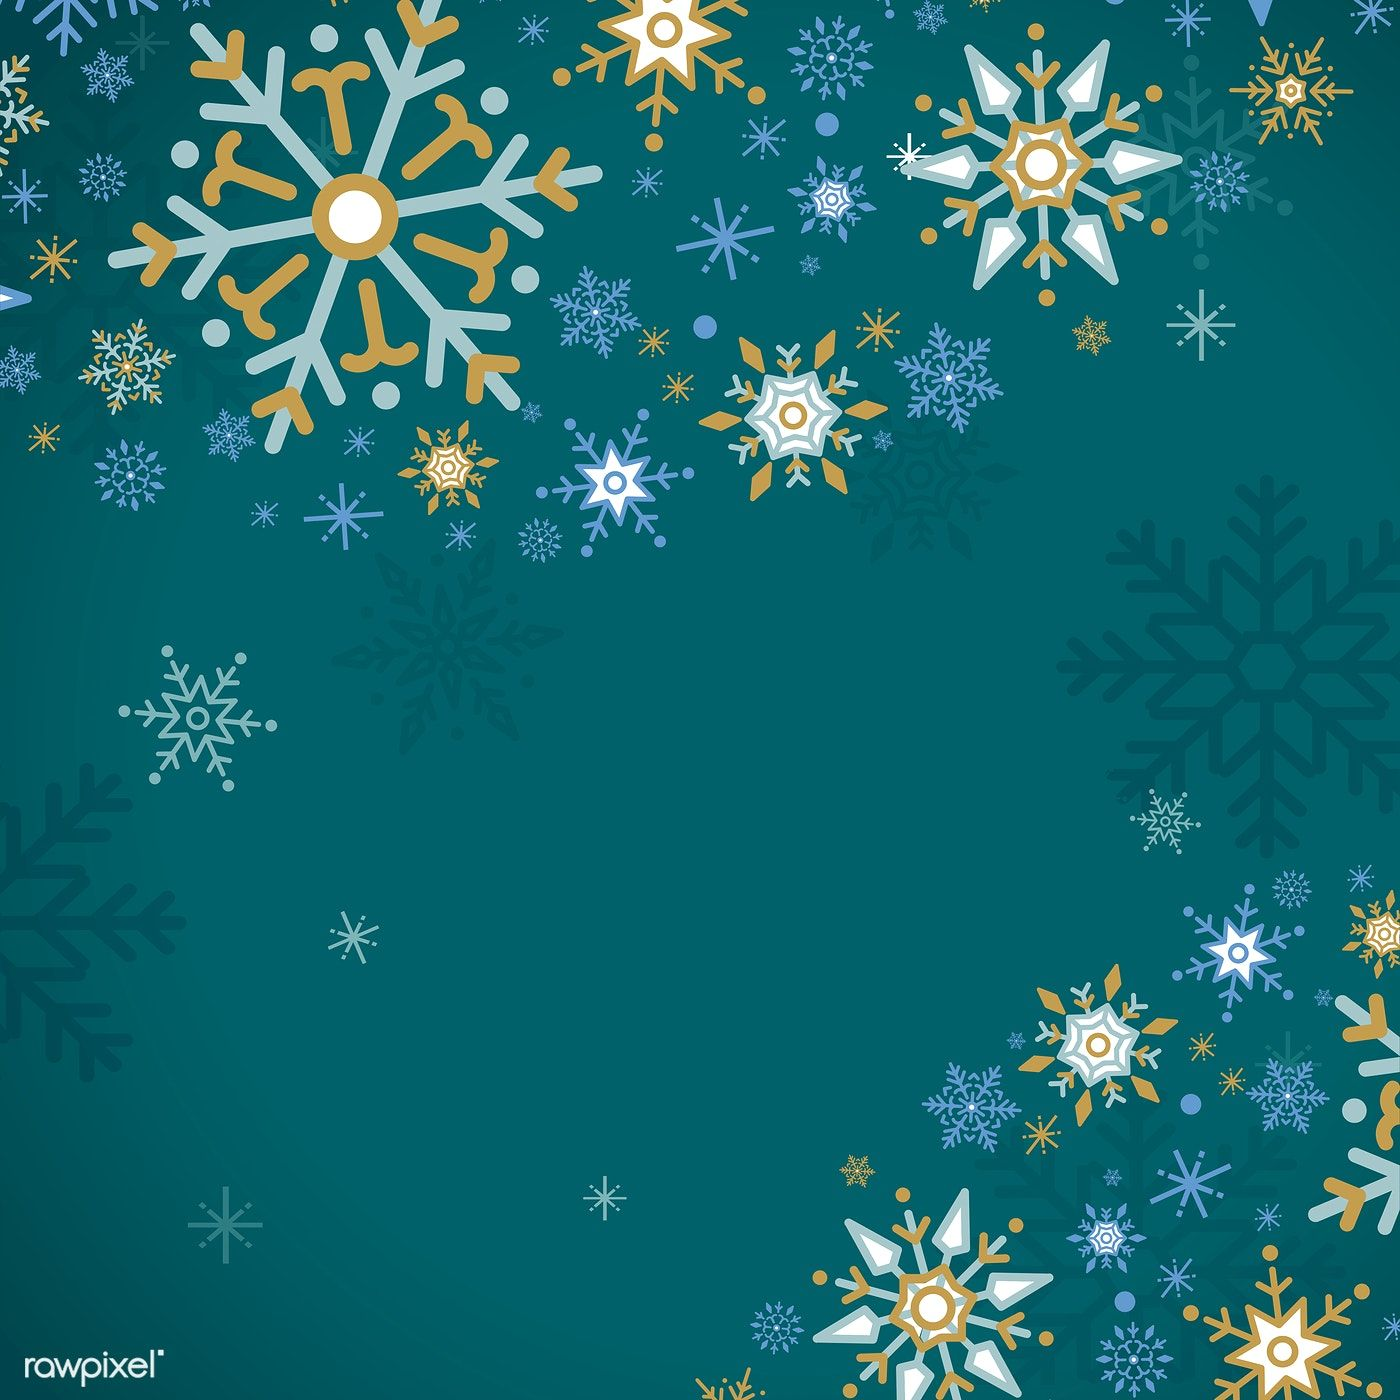 Green Christmas winter holiday background with snowflake